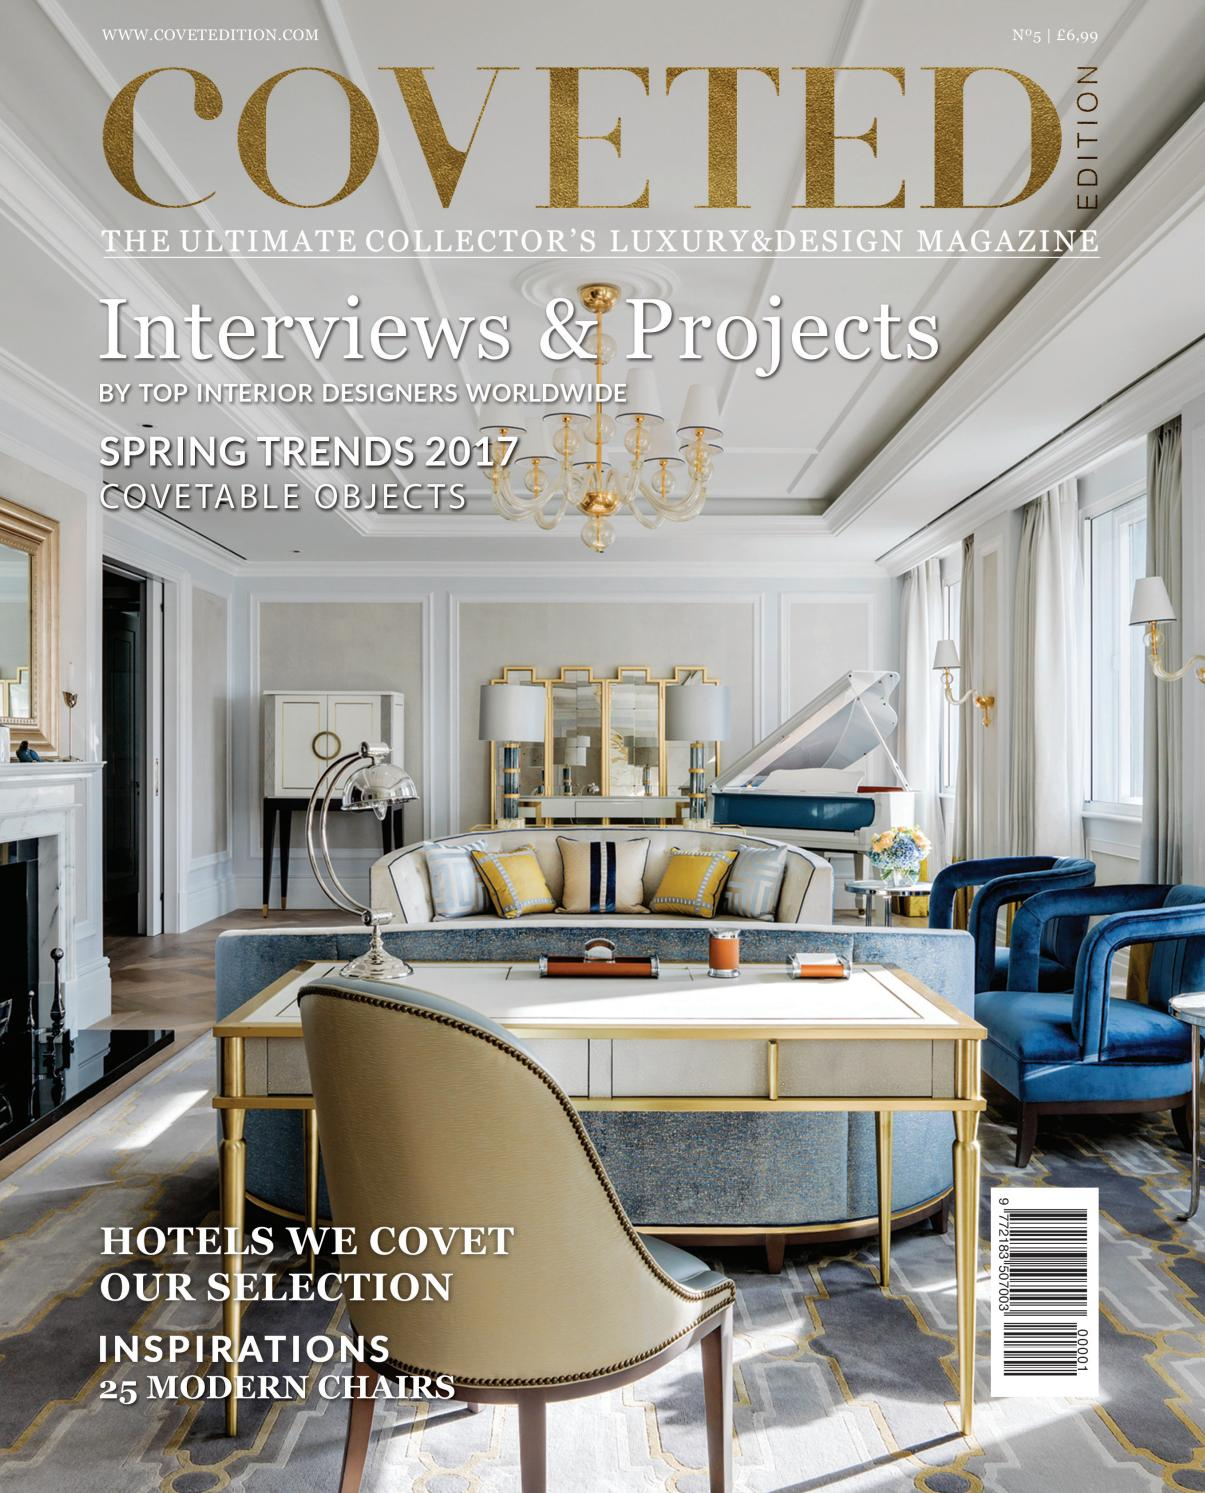 Online Home Decor Magazine: CovetED Magazine 05 By Covet Edition